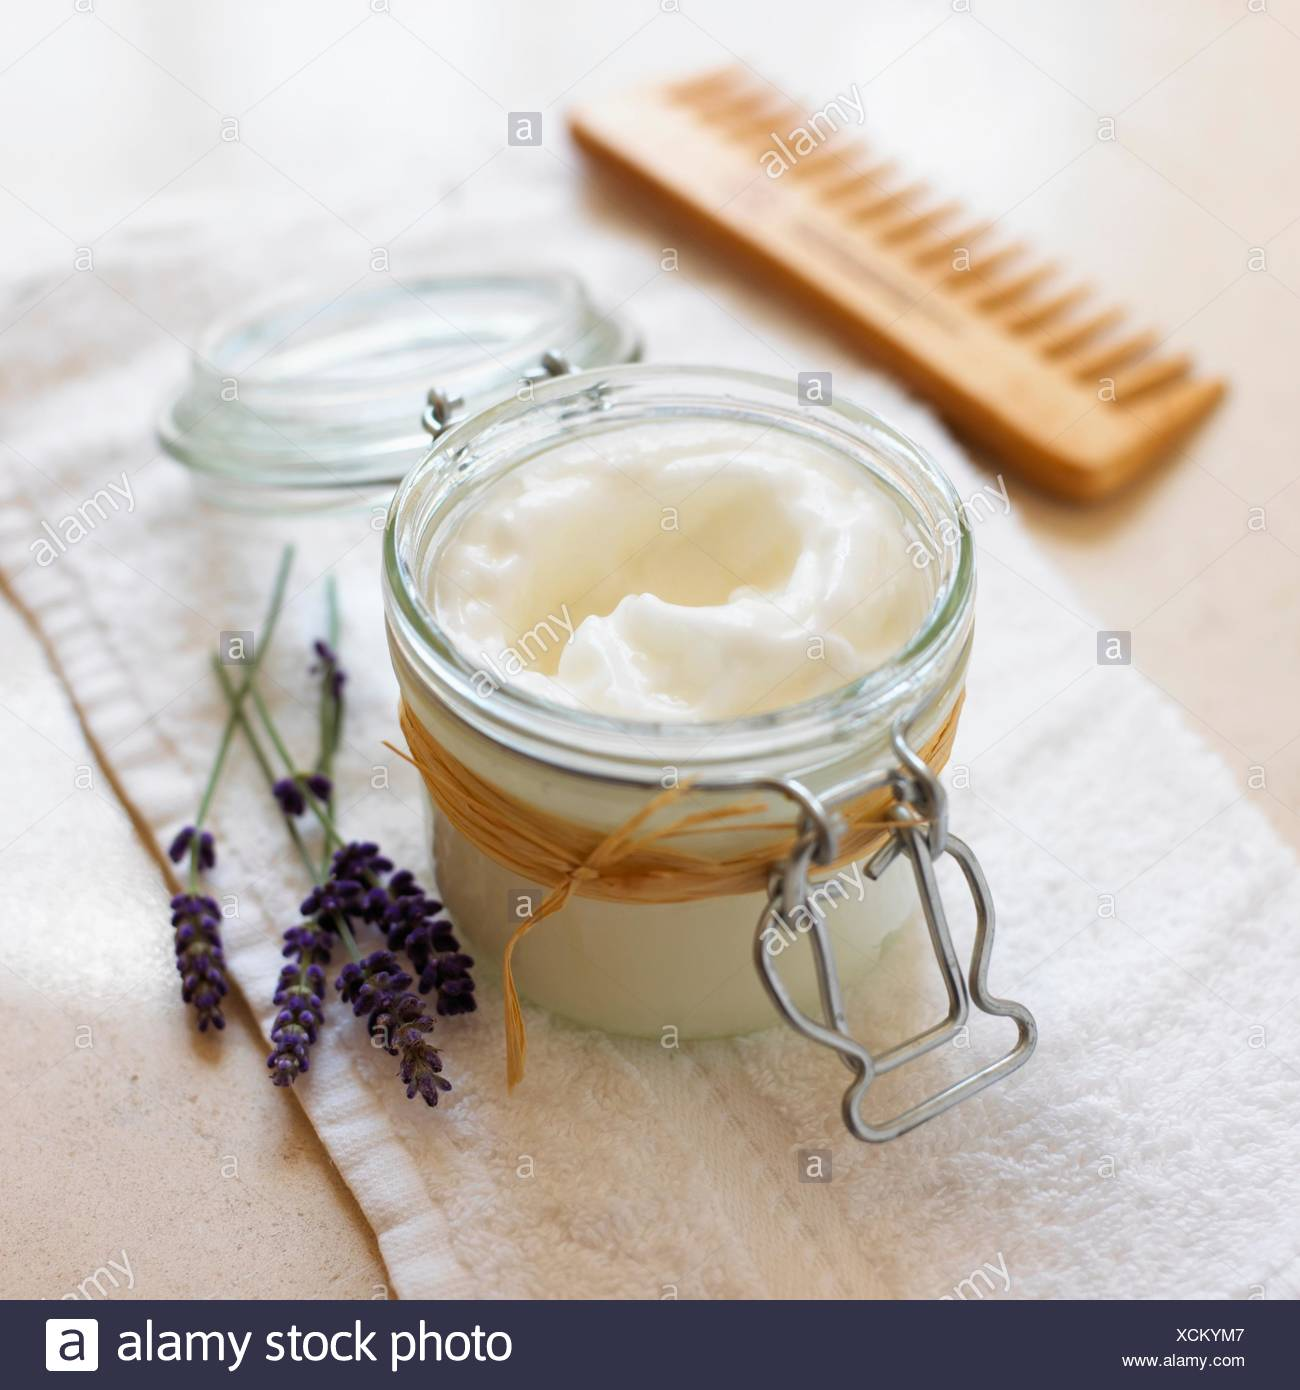 Lavender and rosemary conditioner in a jar, lavender flowers and a comb nearby - Stock Image